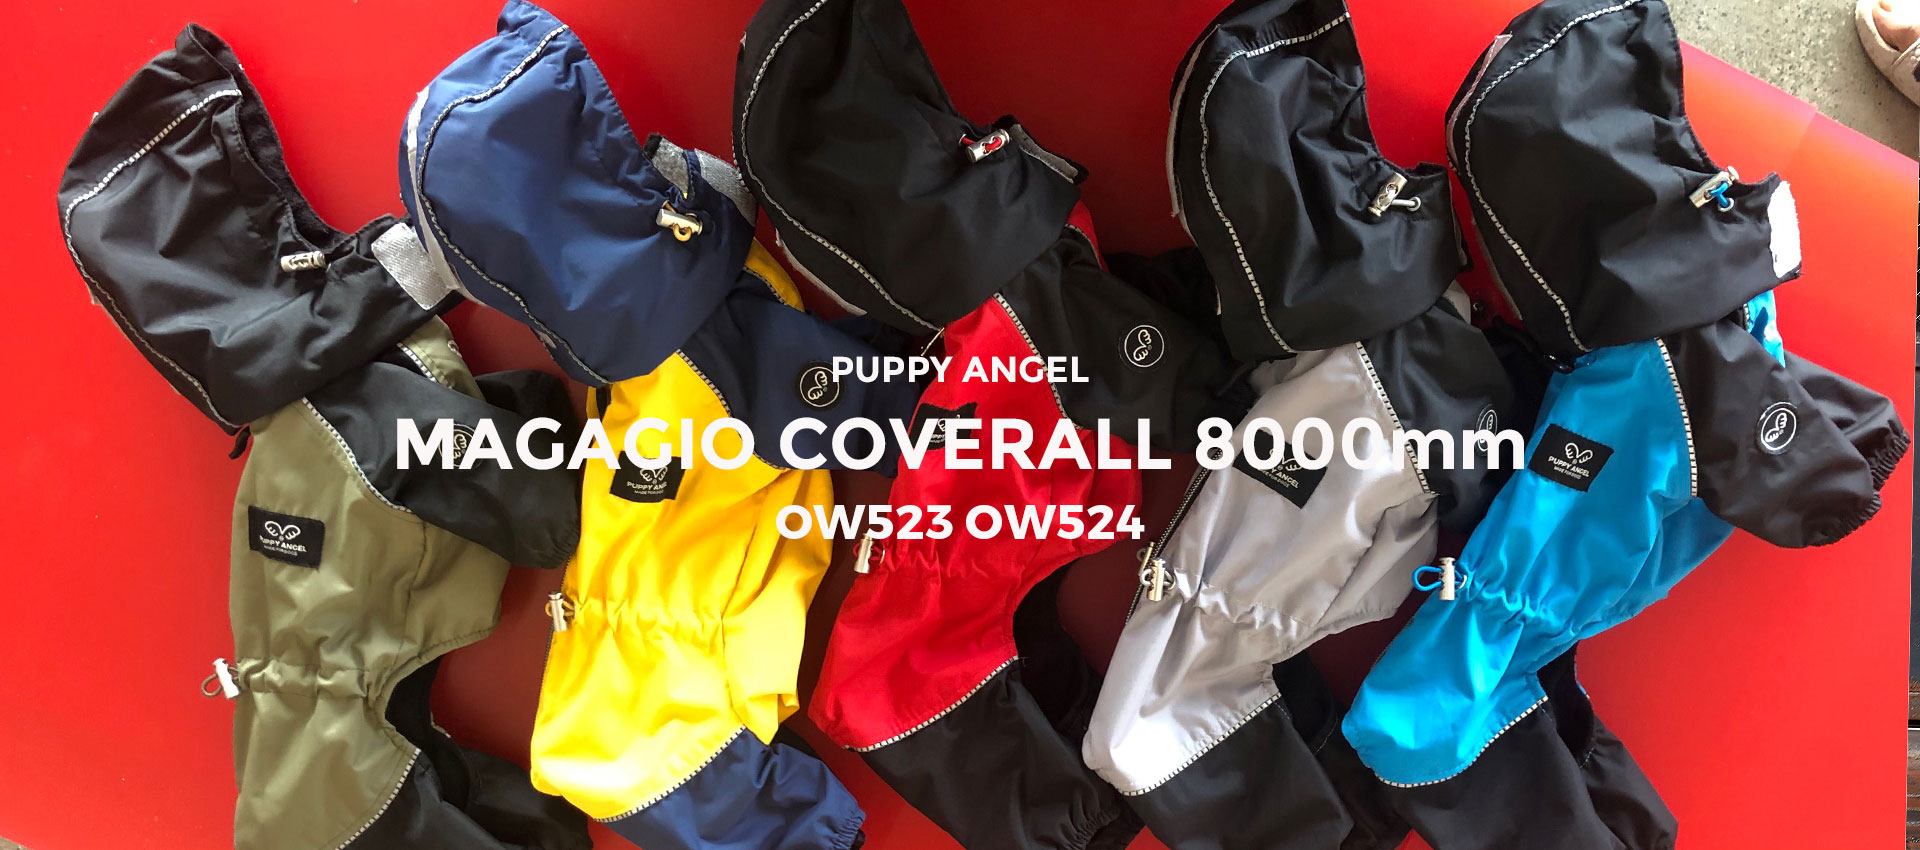 MAGAGIO Coveralls